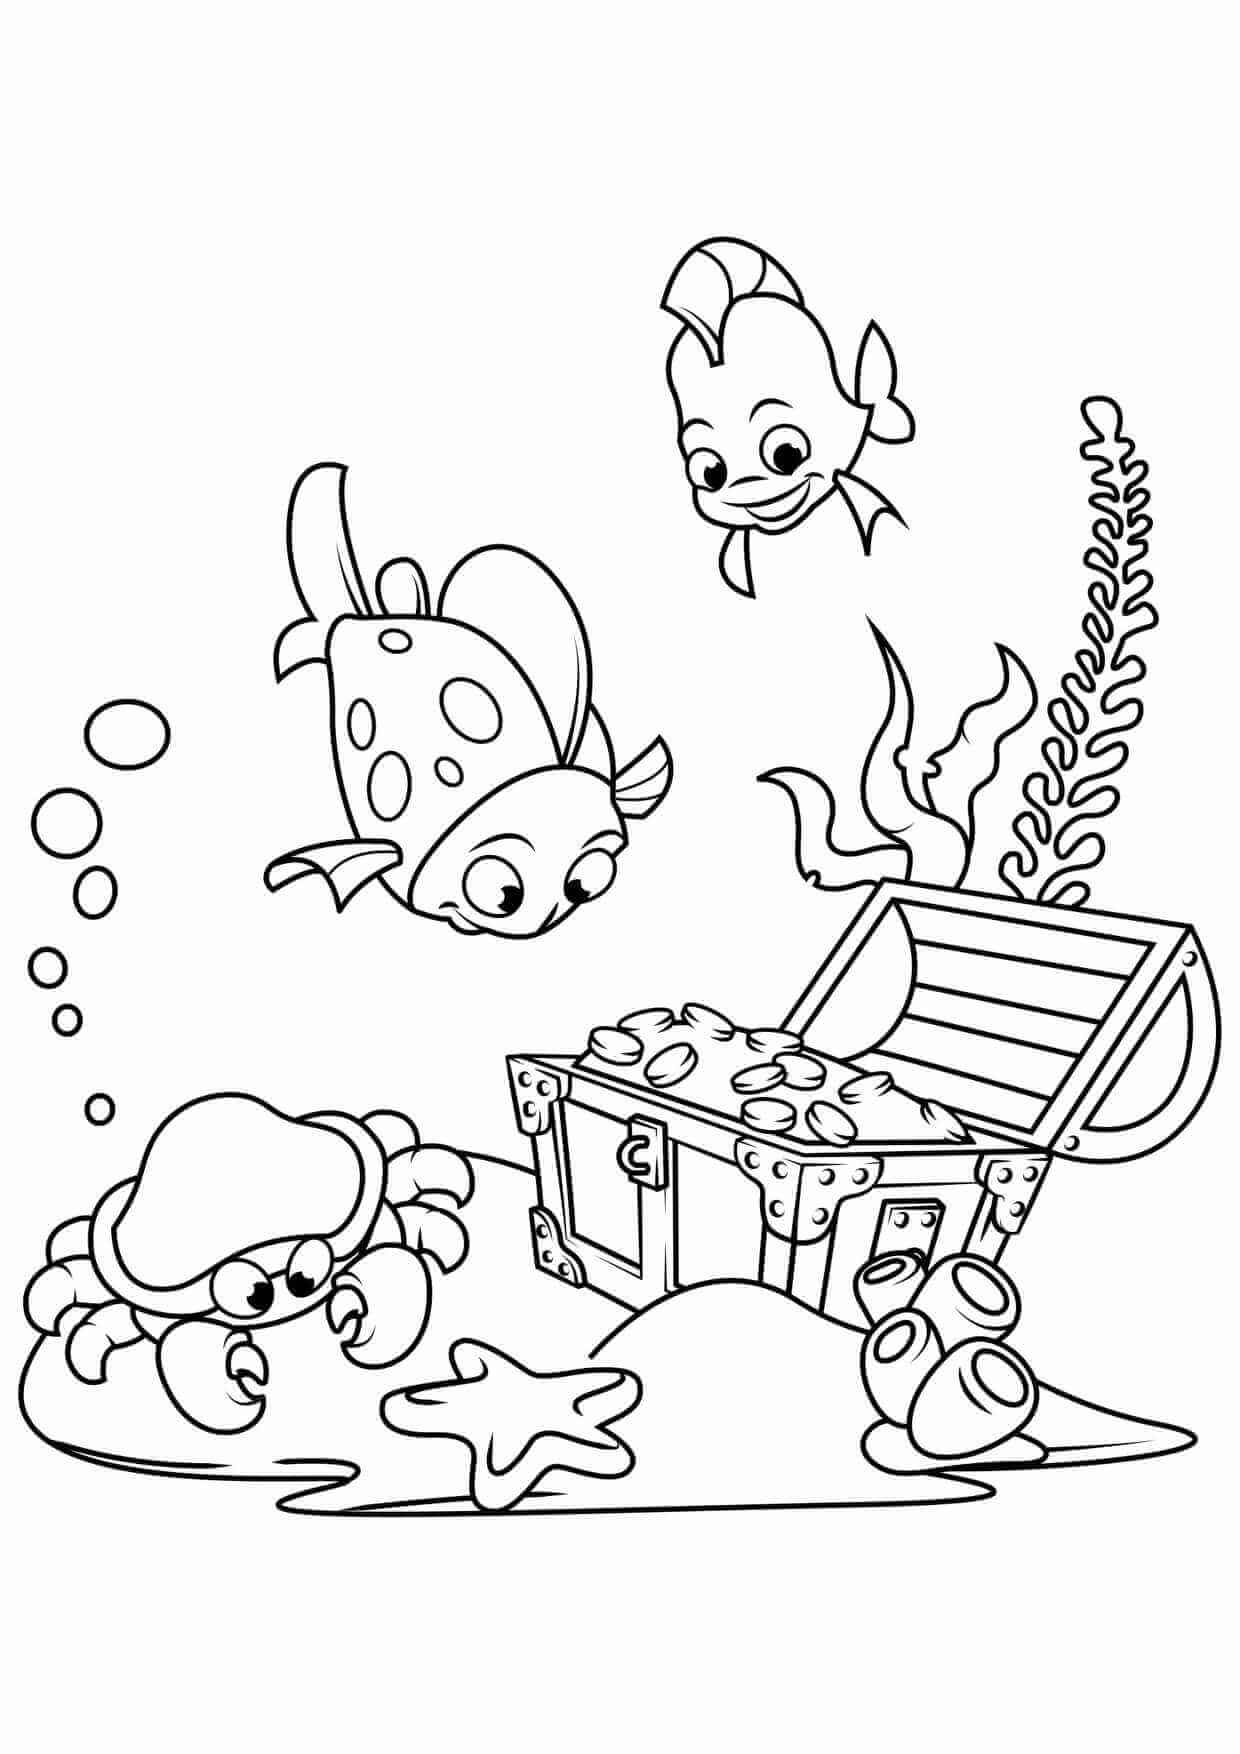 girl coloring books moxie coloring pages for girls to print for free girl coloring books